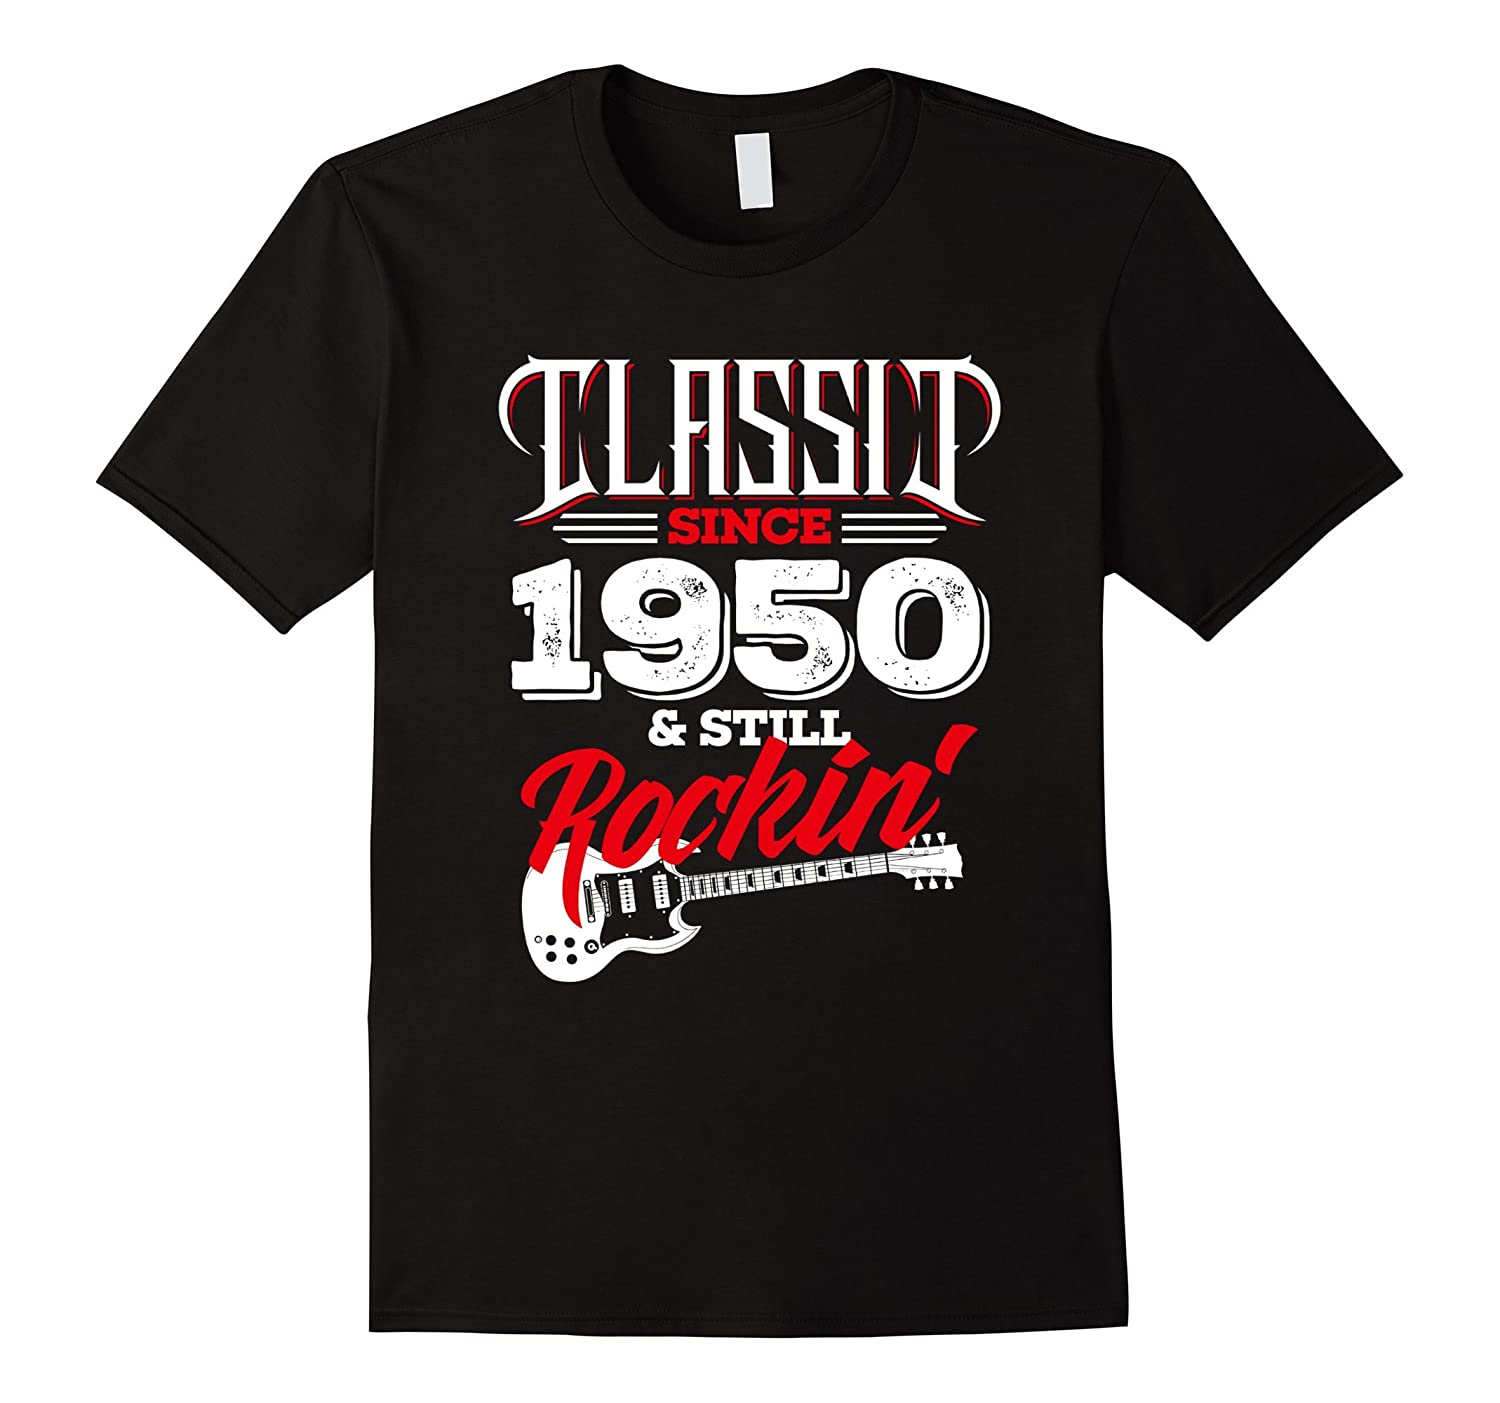 67 Years Old Gifts - 67th Birthday Classic Since 1950 TShirt-TJ